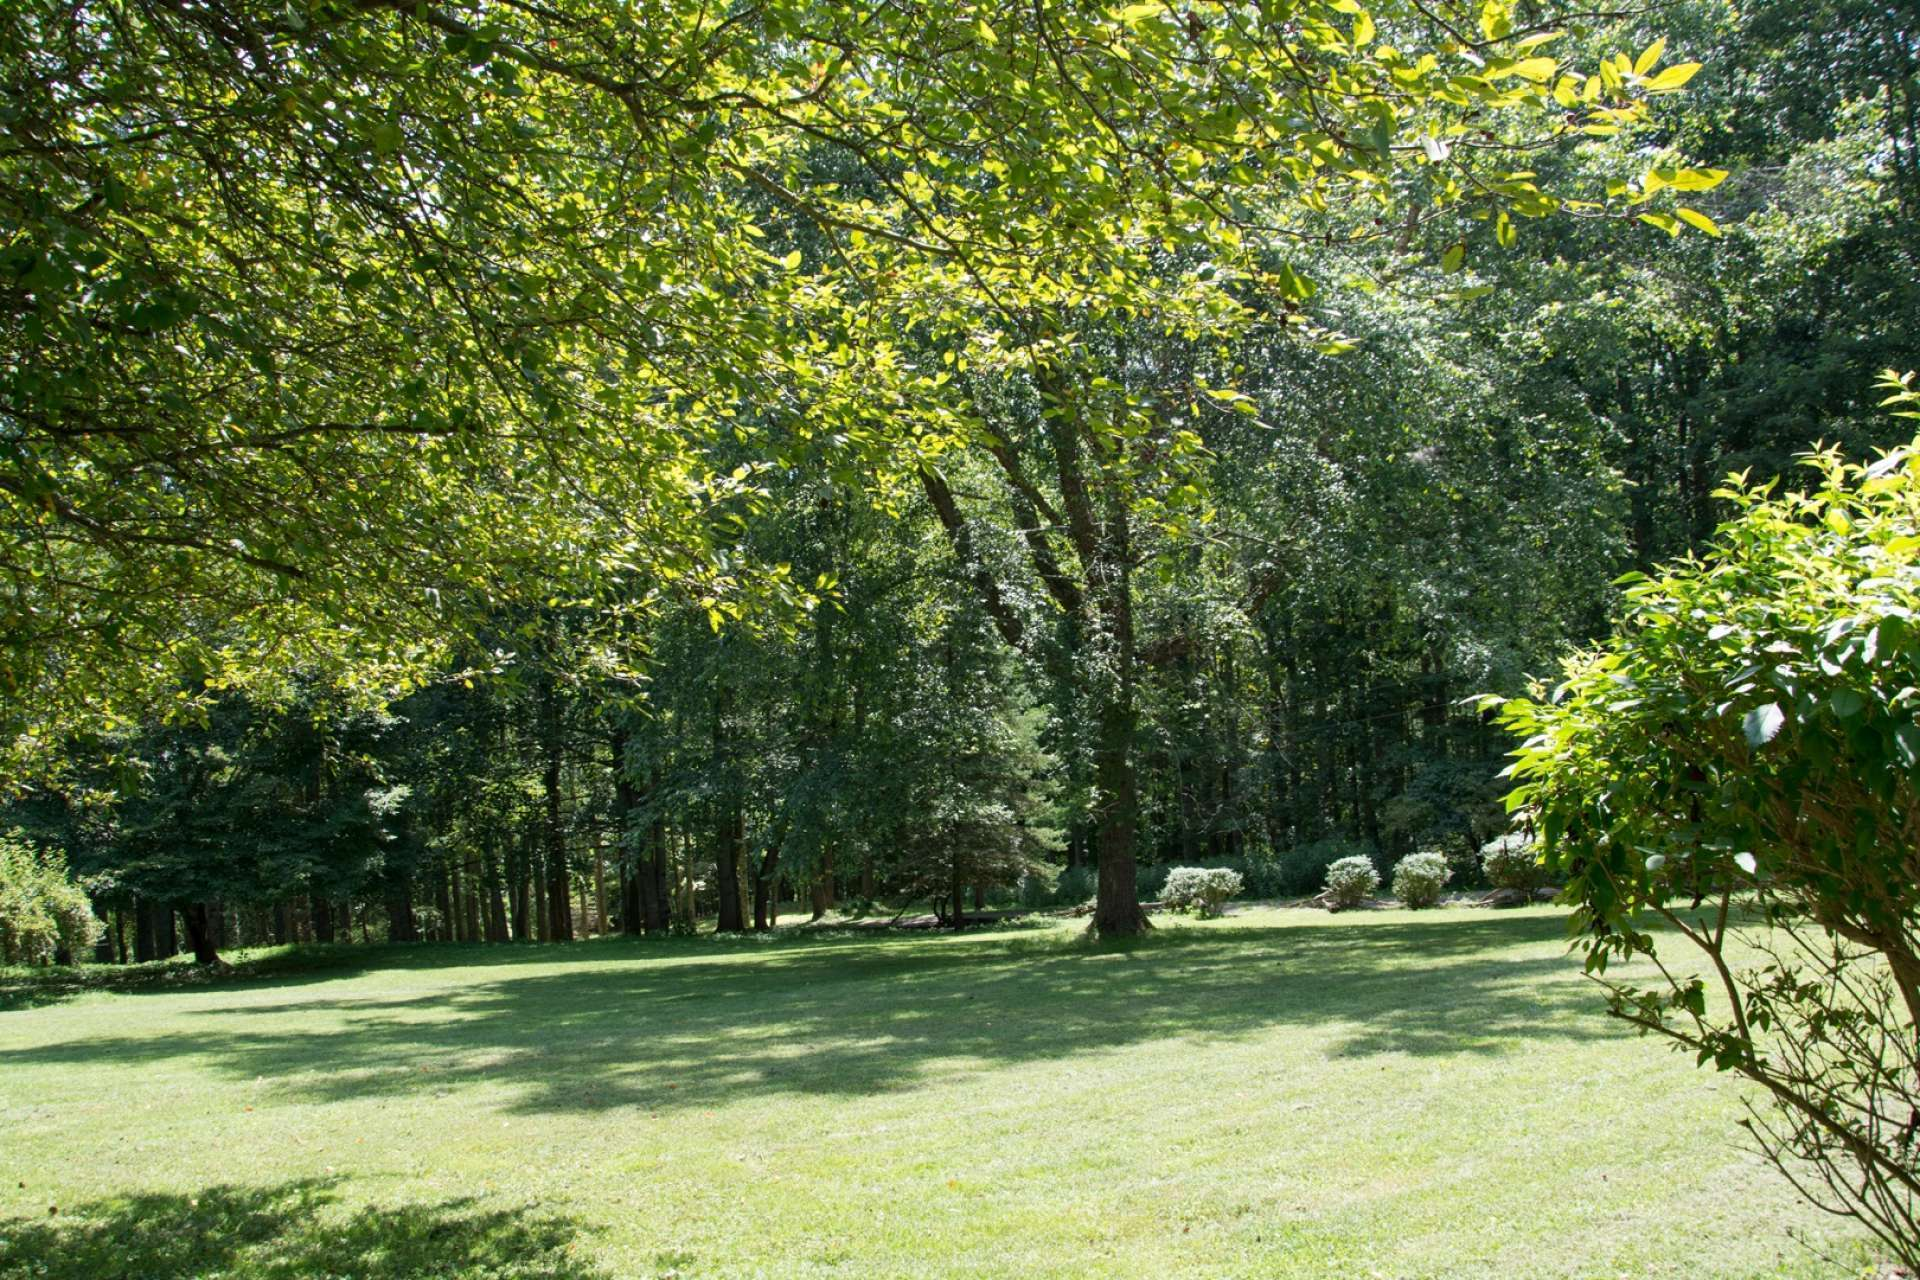 A lush green lawn with large shade trees provide a wonderful space for outdoor games or gardens.